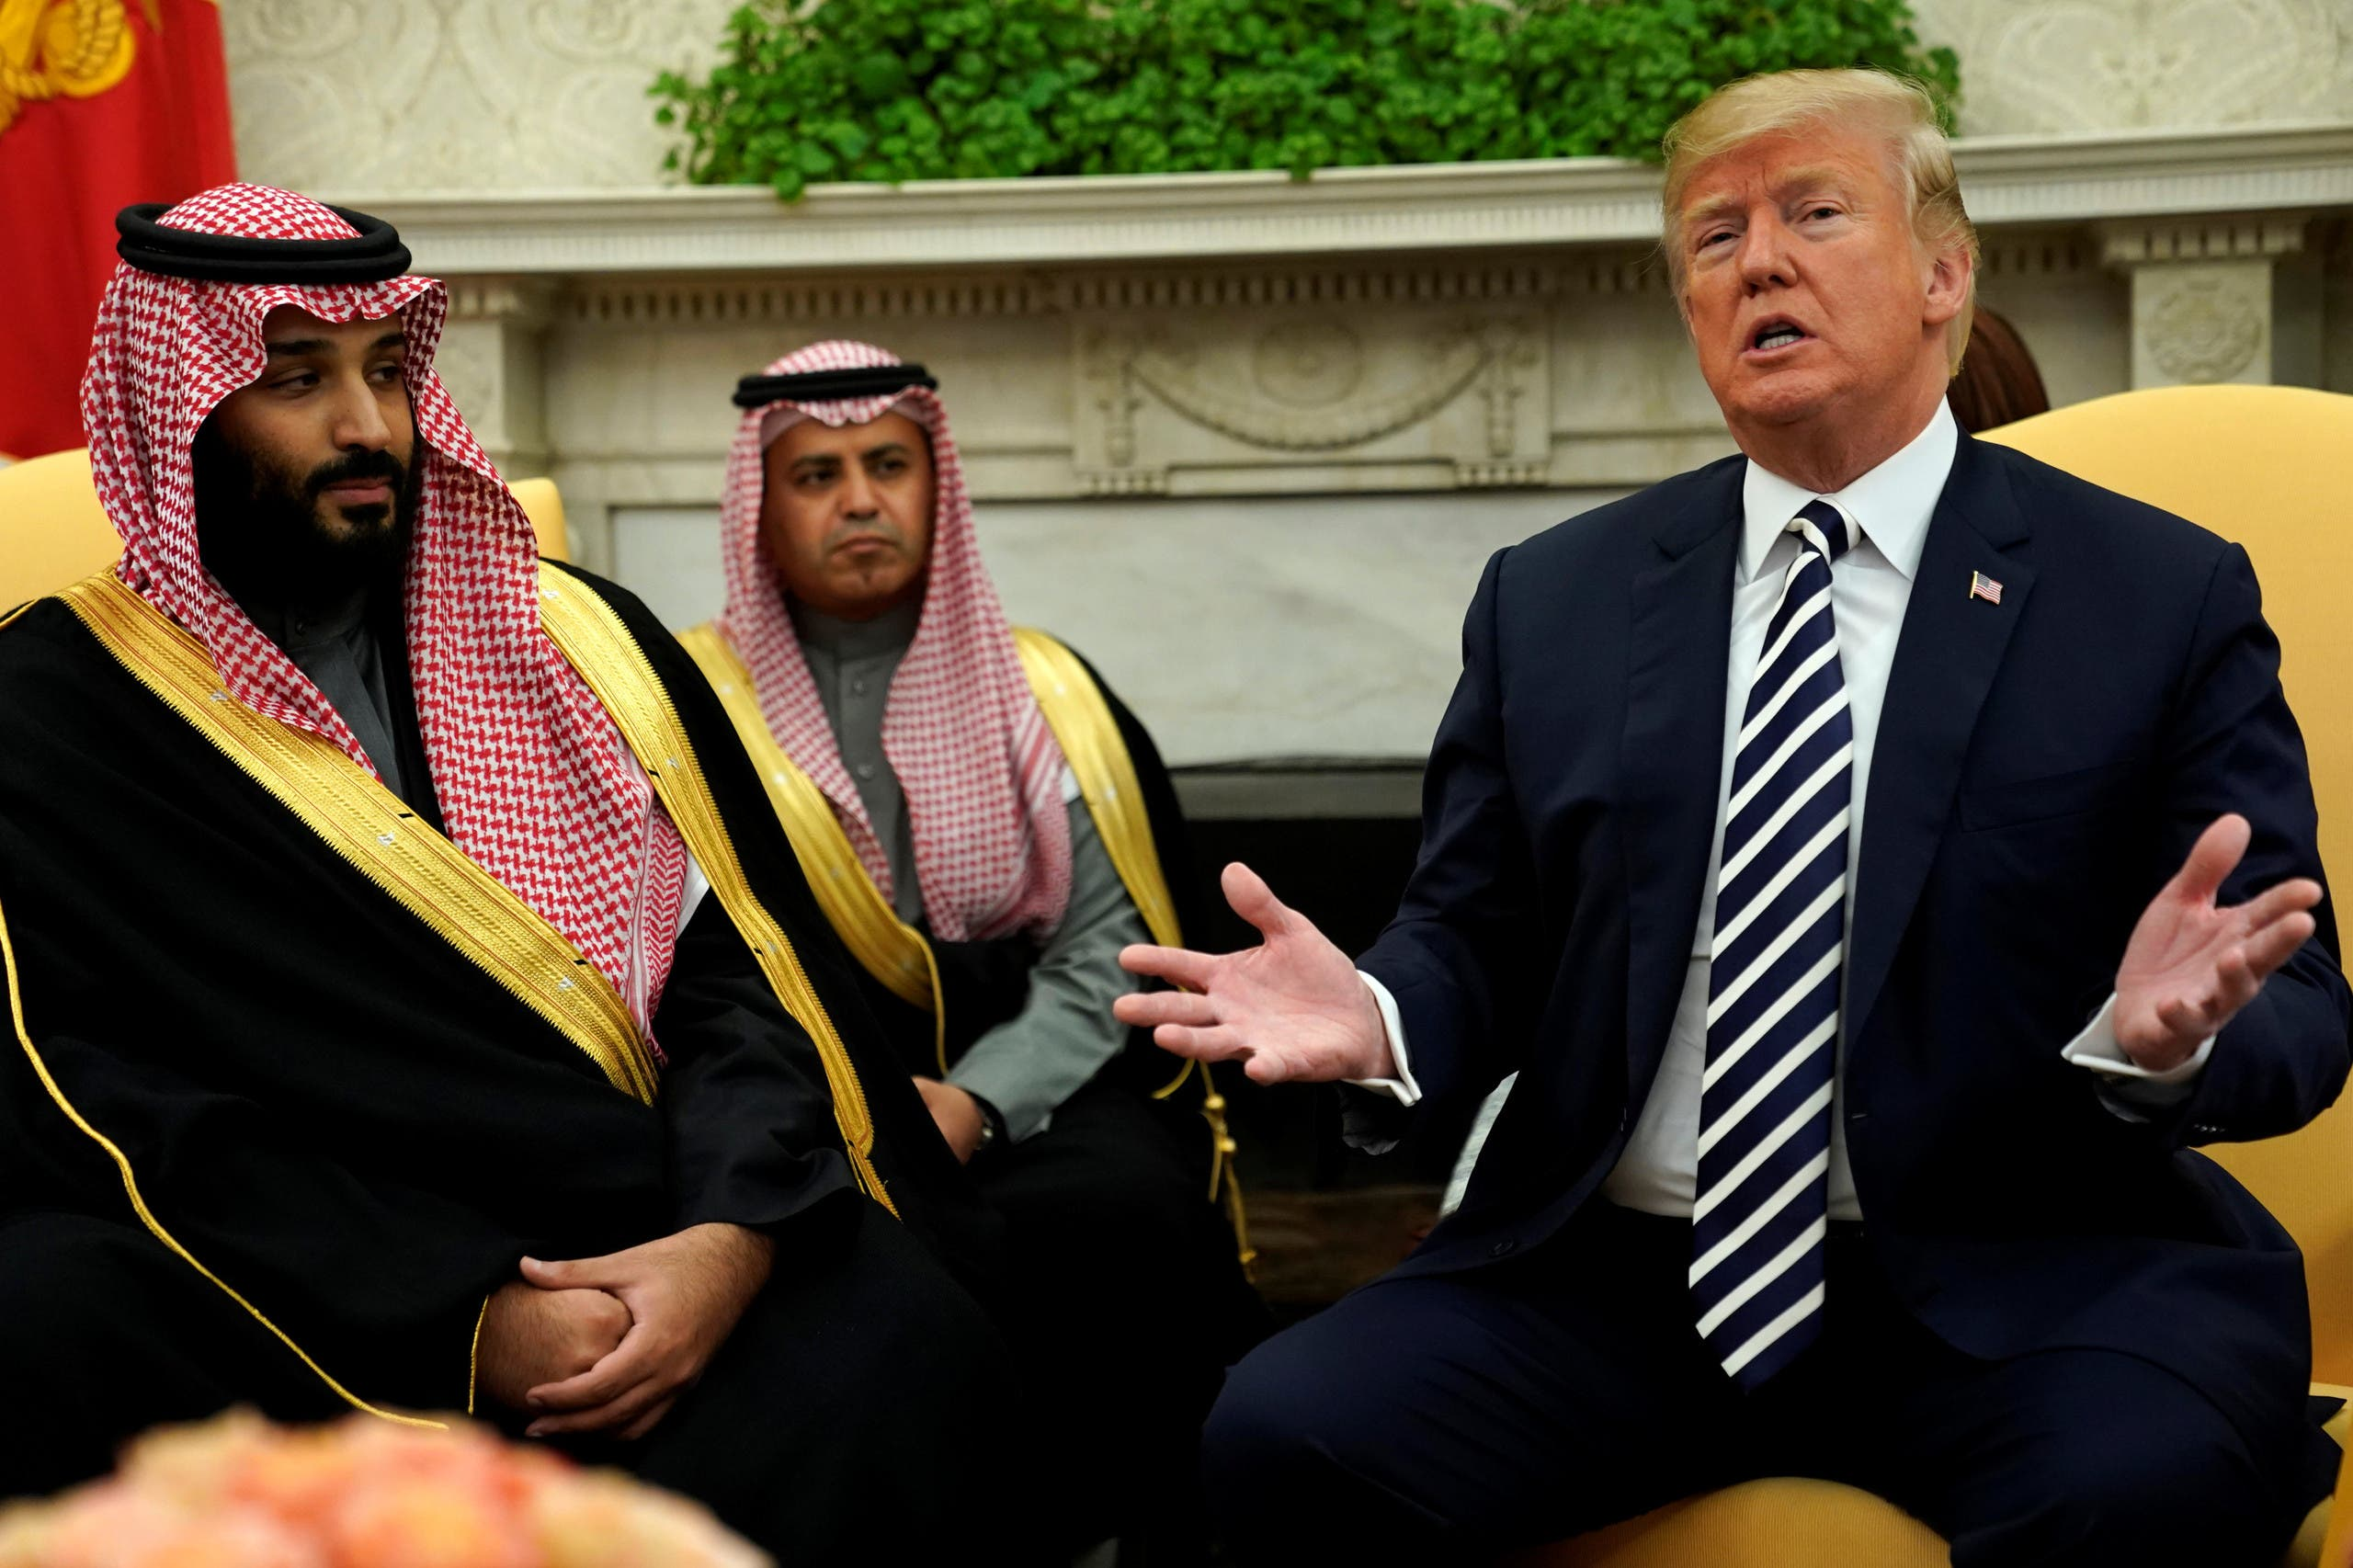 U.S. President Donald Trump and Saudi Arabia's Crown Prince Mohammed bin Salman sit down to a working lunch with their delegations at the White House in Washington, U.S. March 20, 2018. REUTERS/Jonathan Ernst